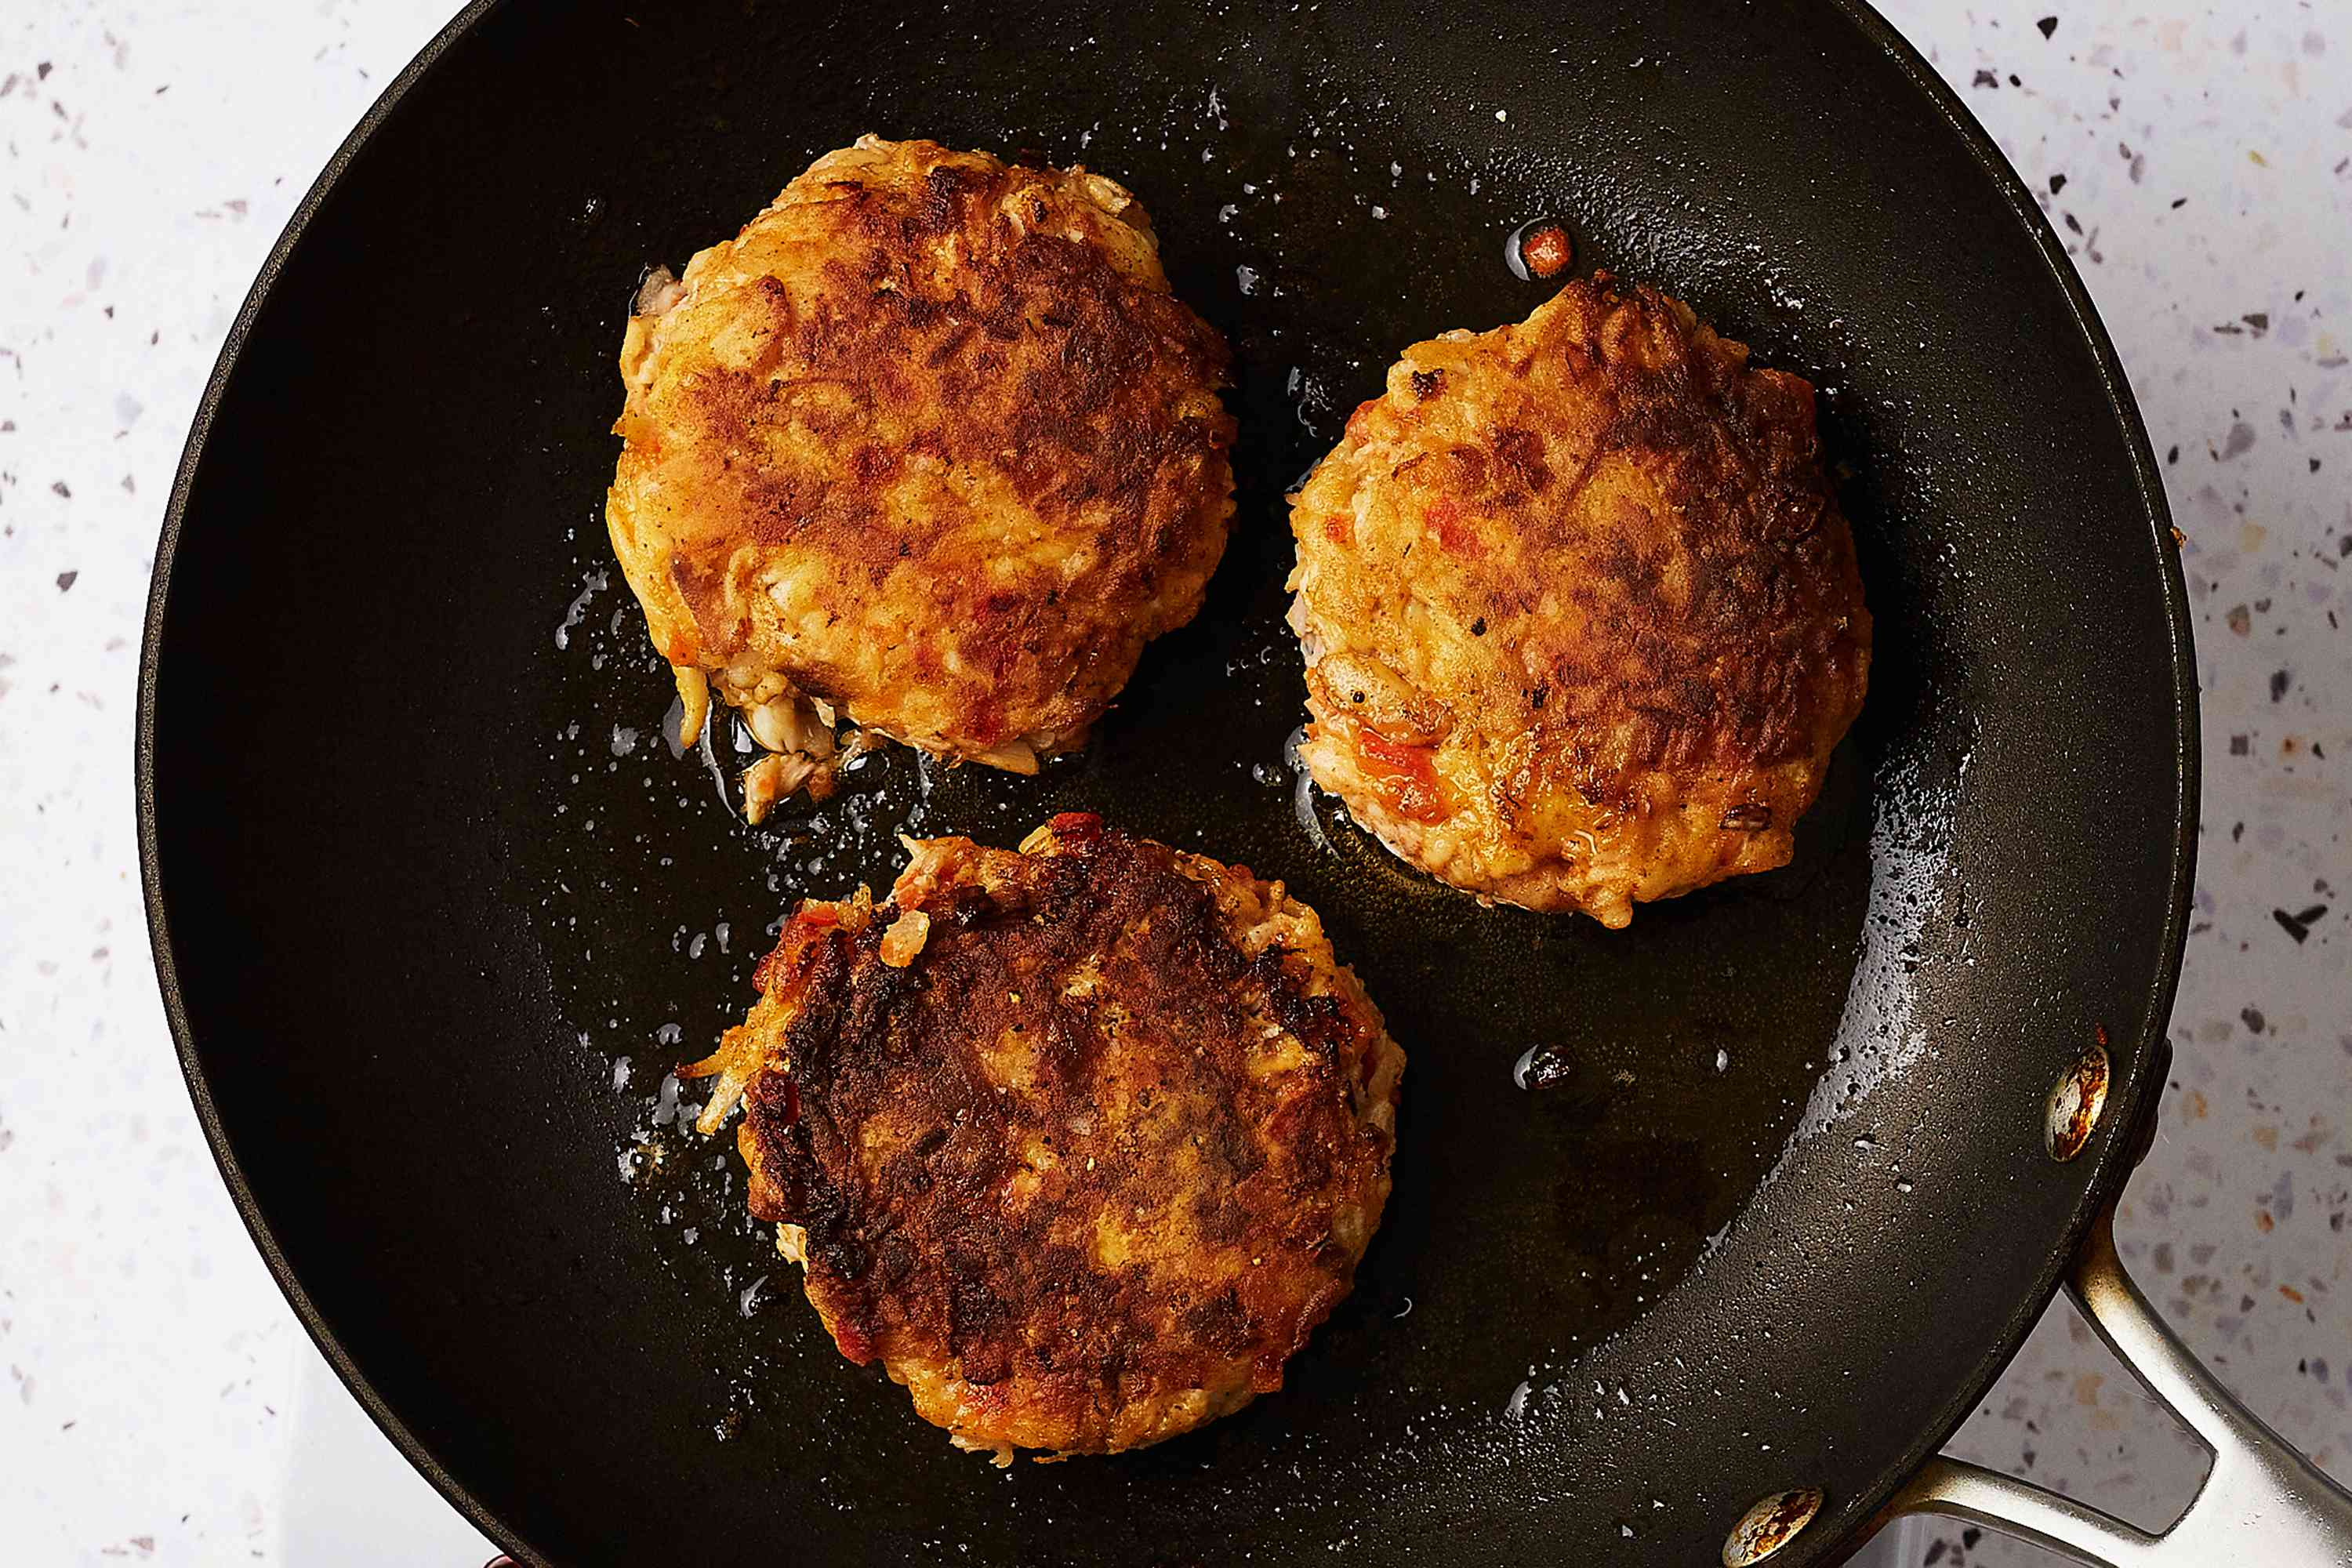 Gluten-free crab cakes in a pan